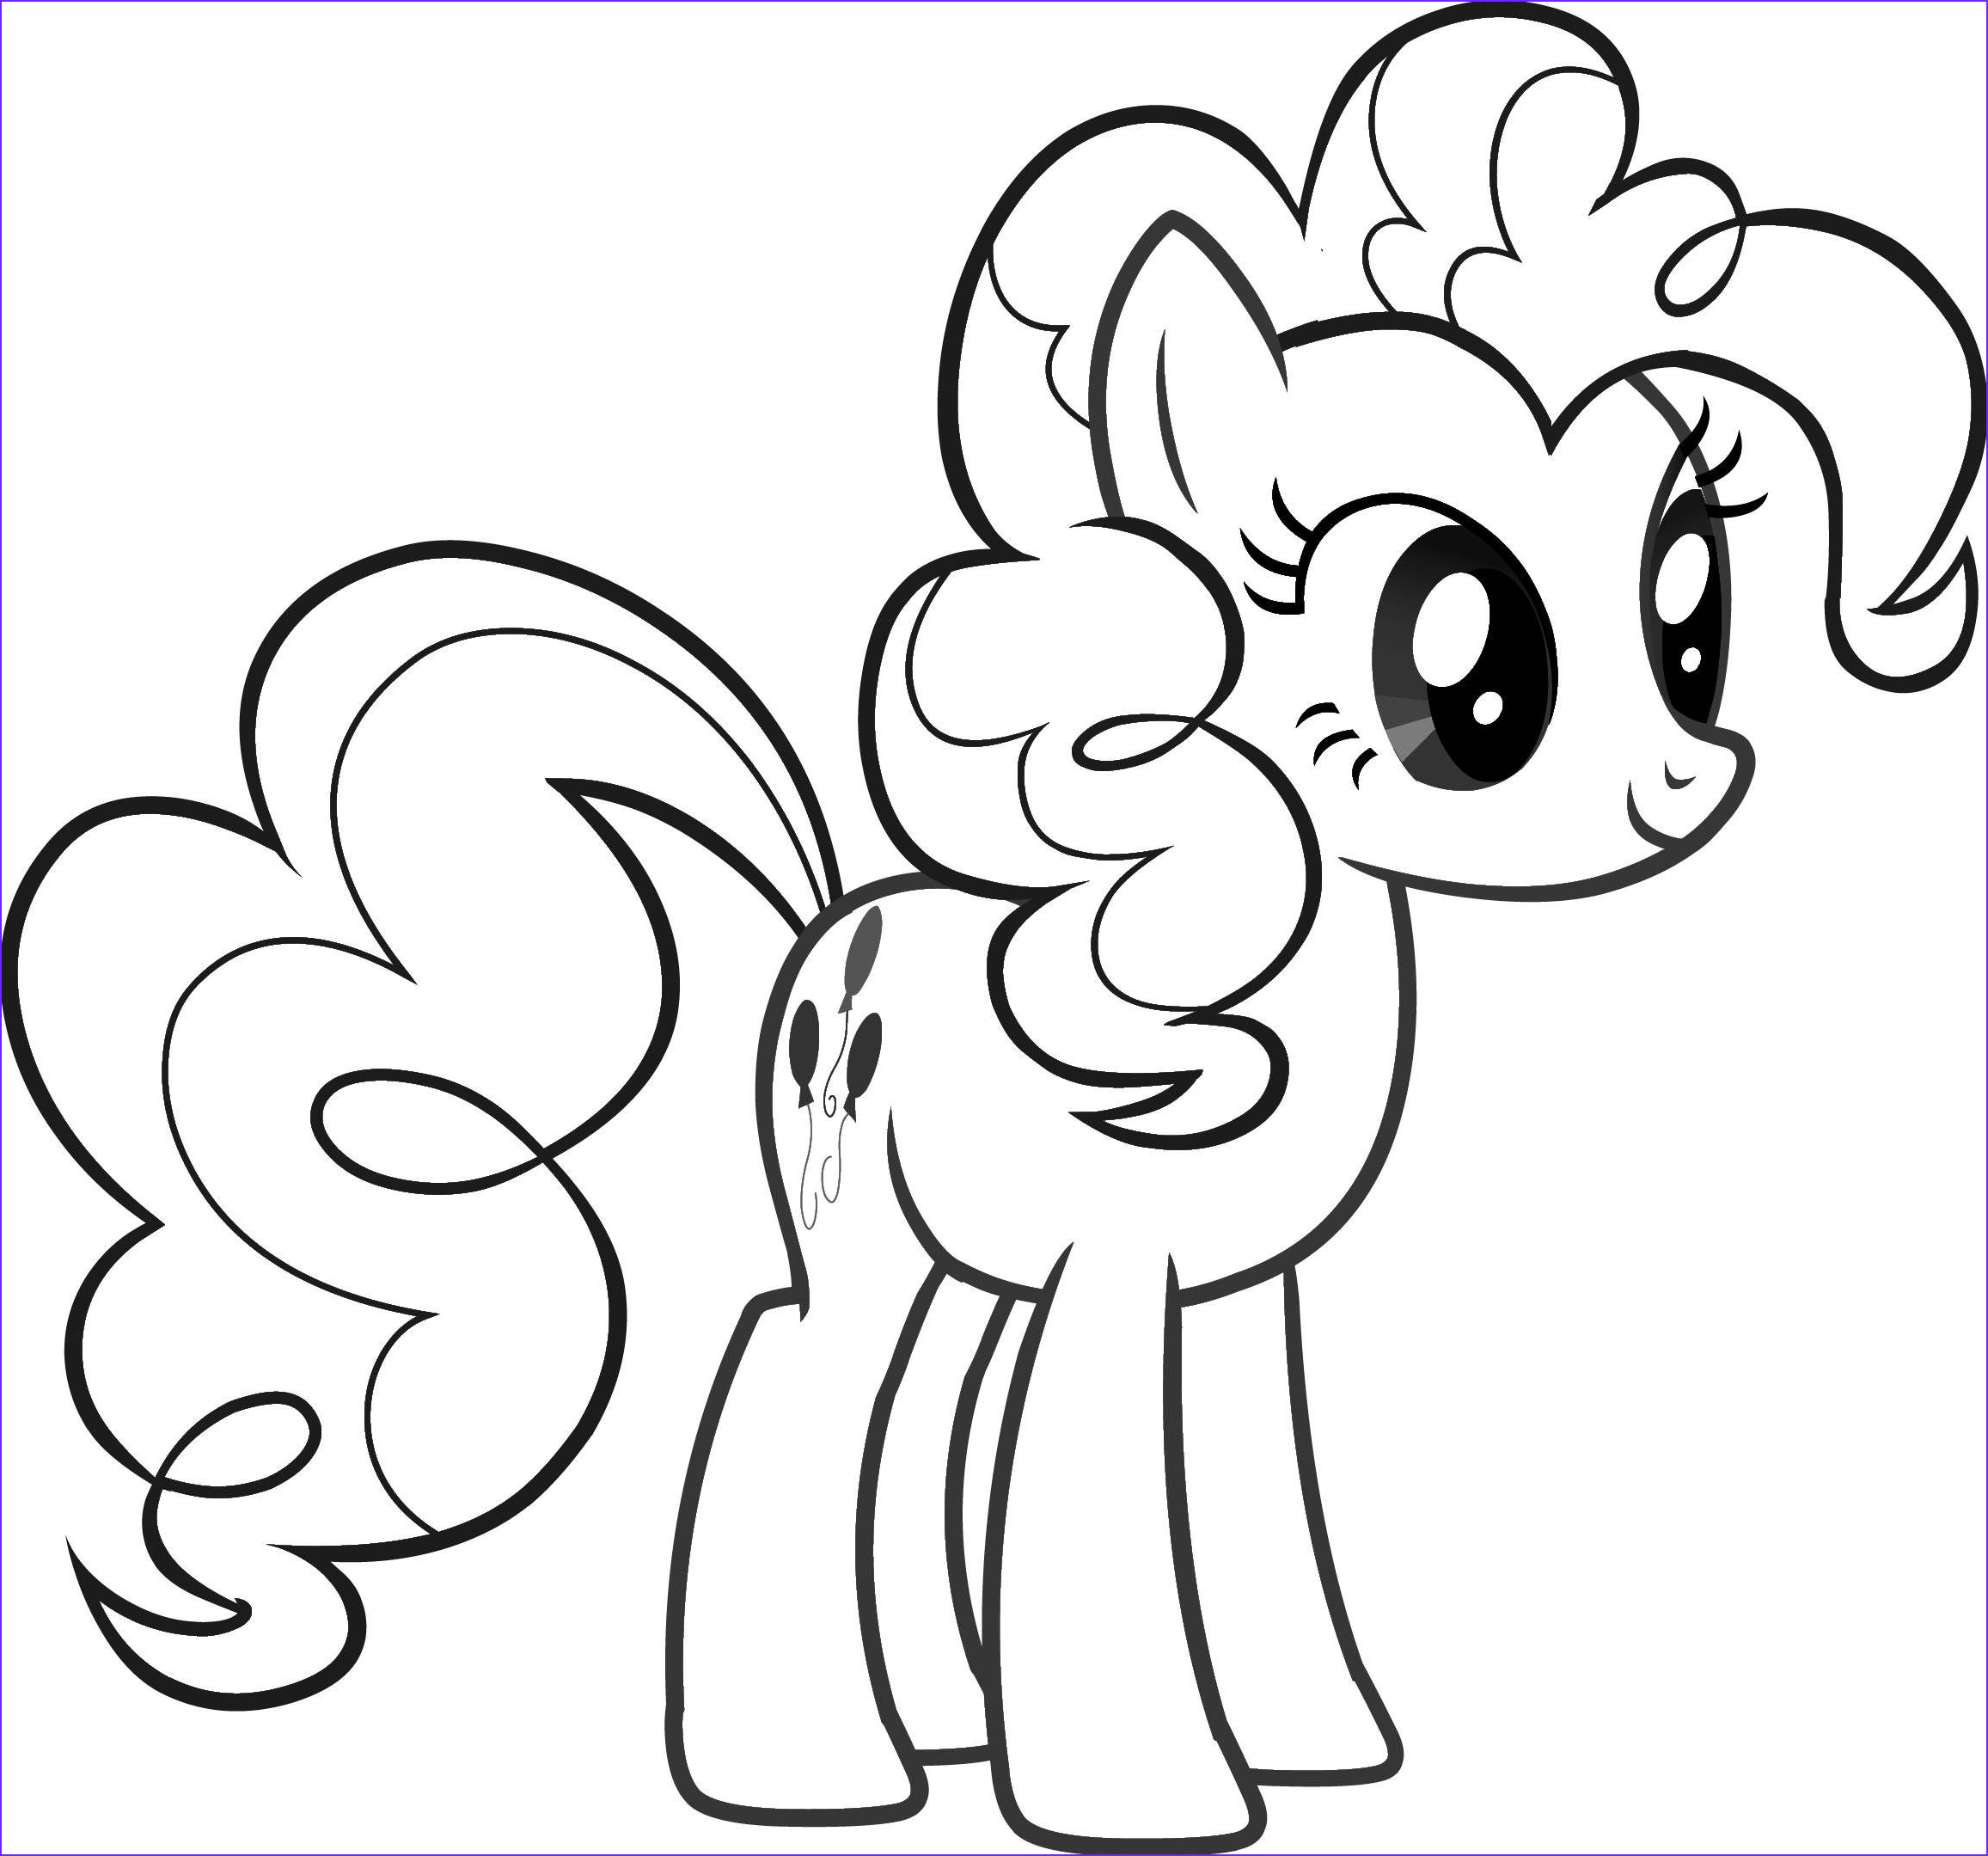 Coloring Pages for Little Kids Beautiful Photos the 2011 ford Mustang Pony Package Kopykake